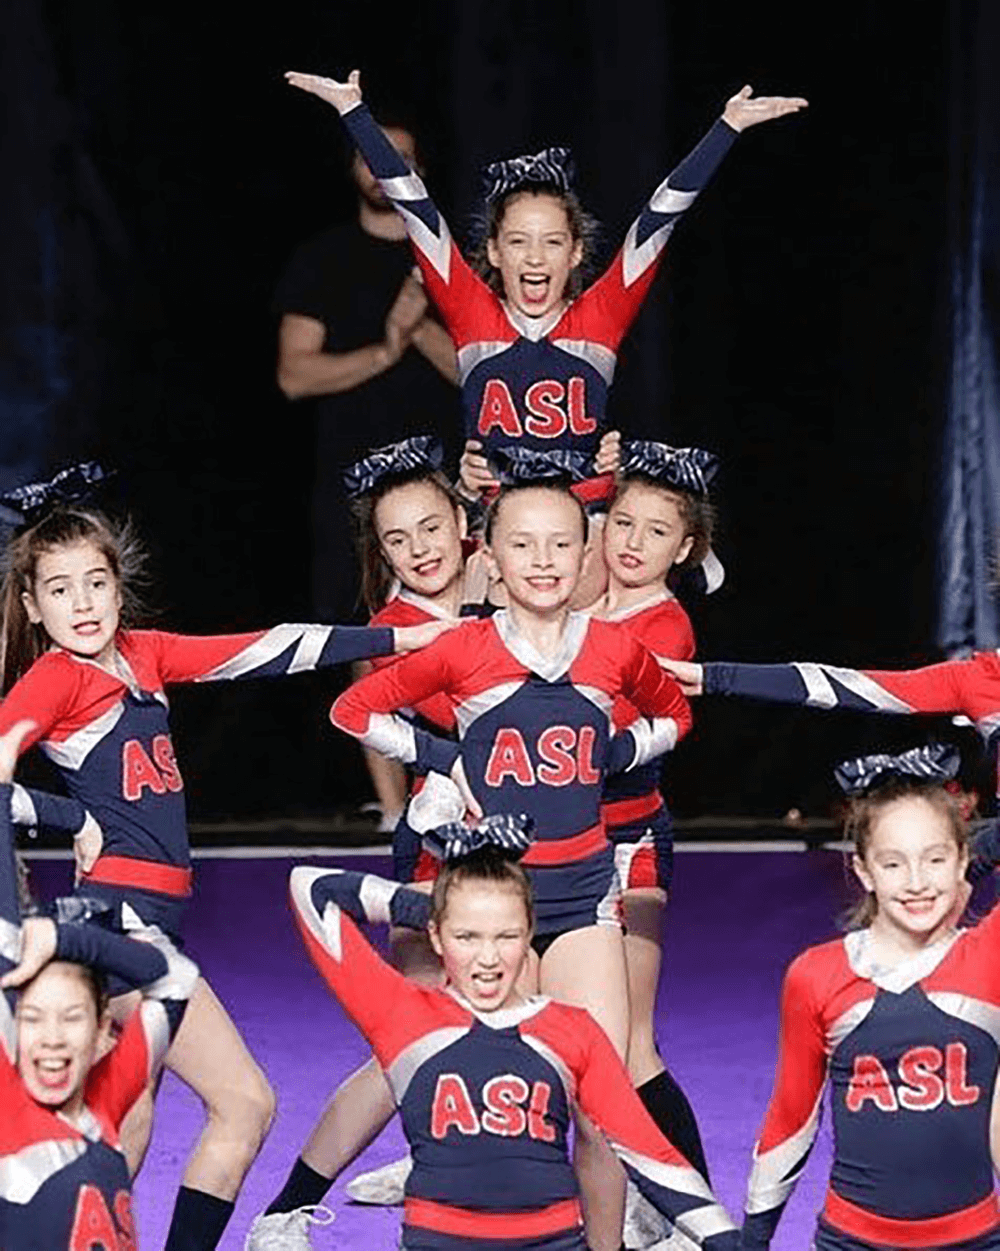 Académie Saint-louis | Cheerleading